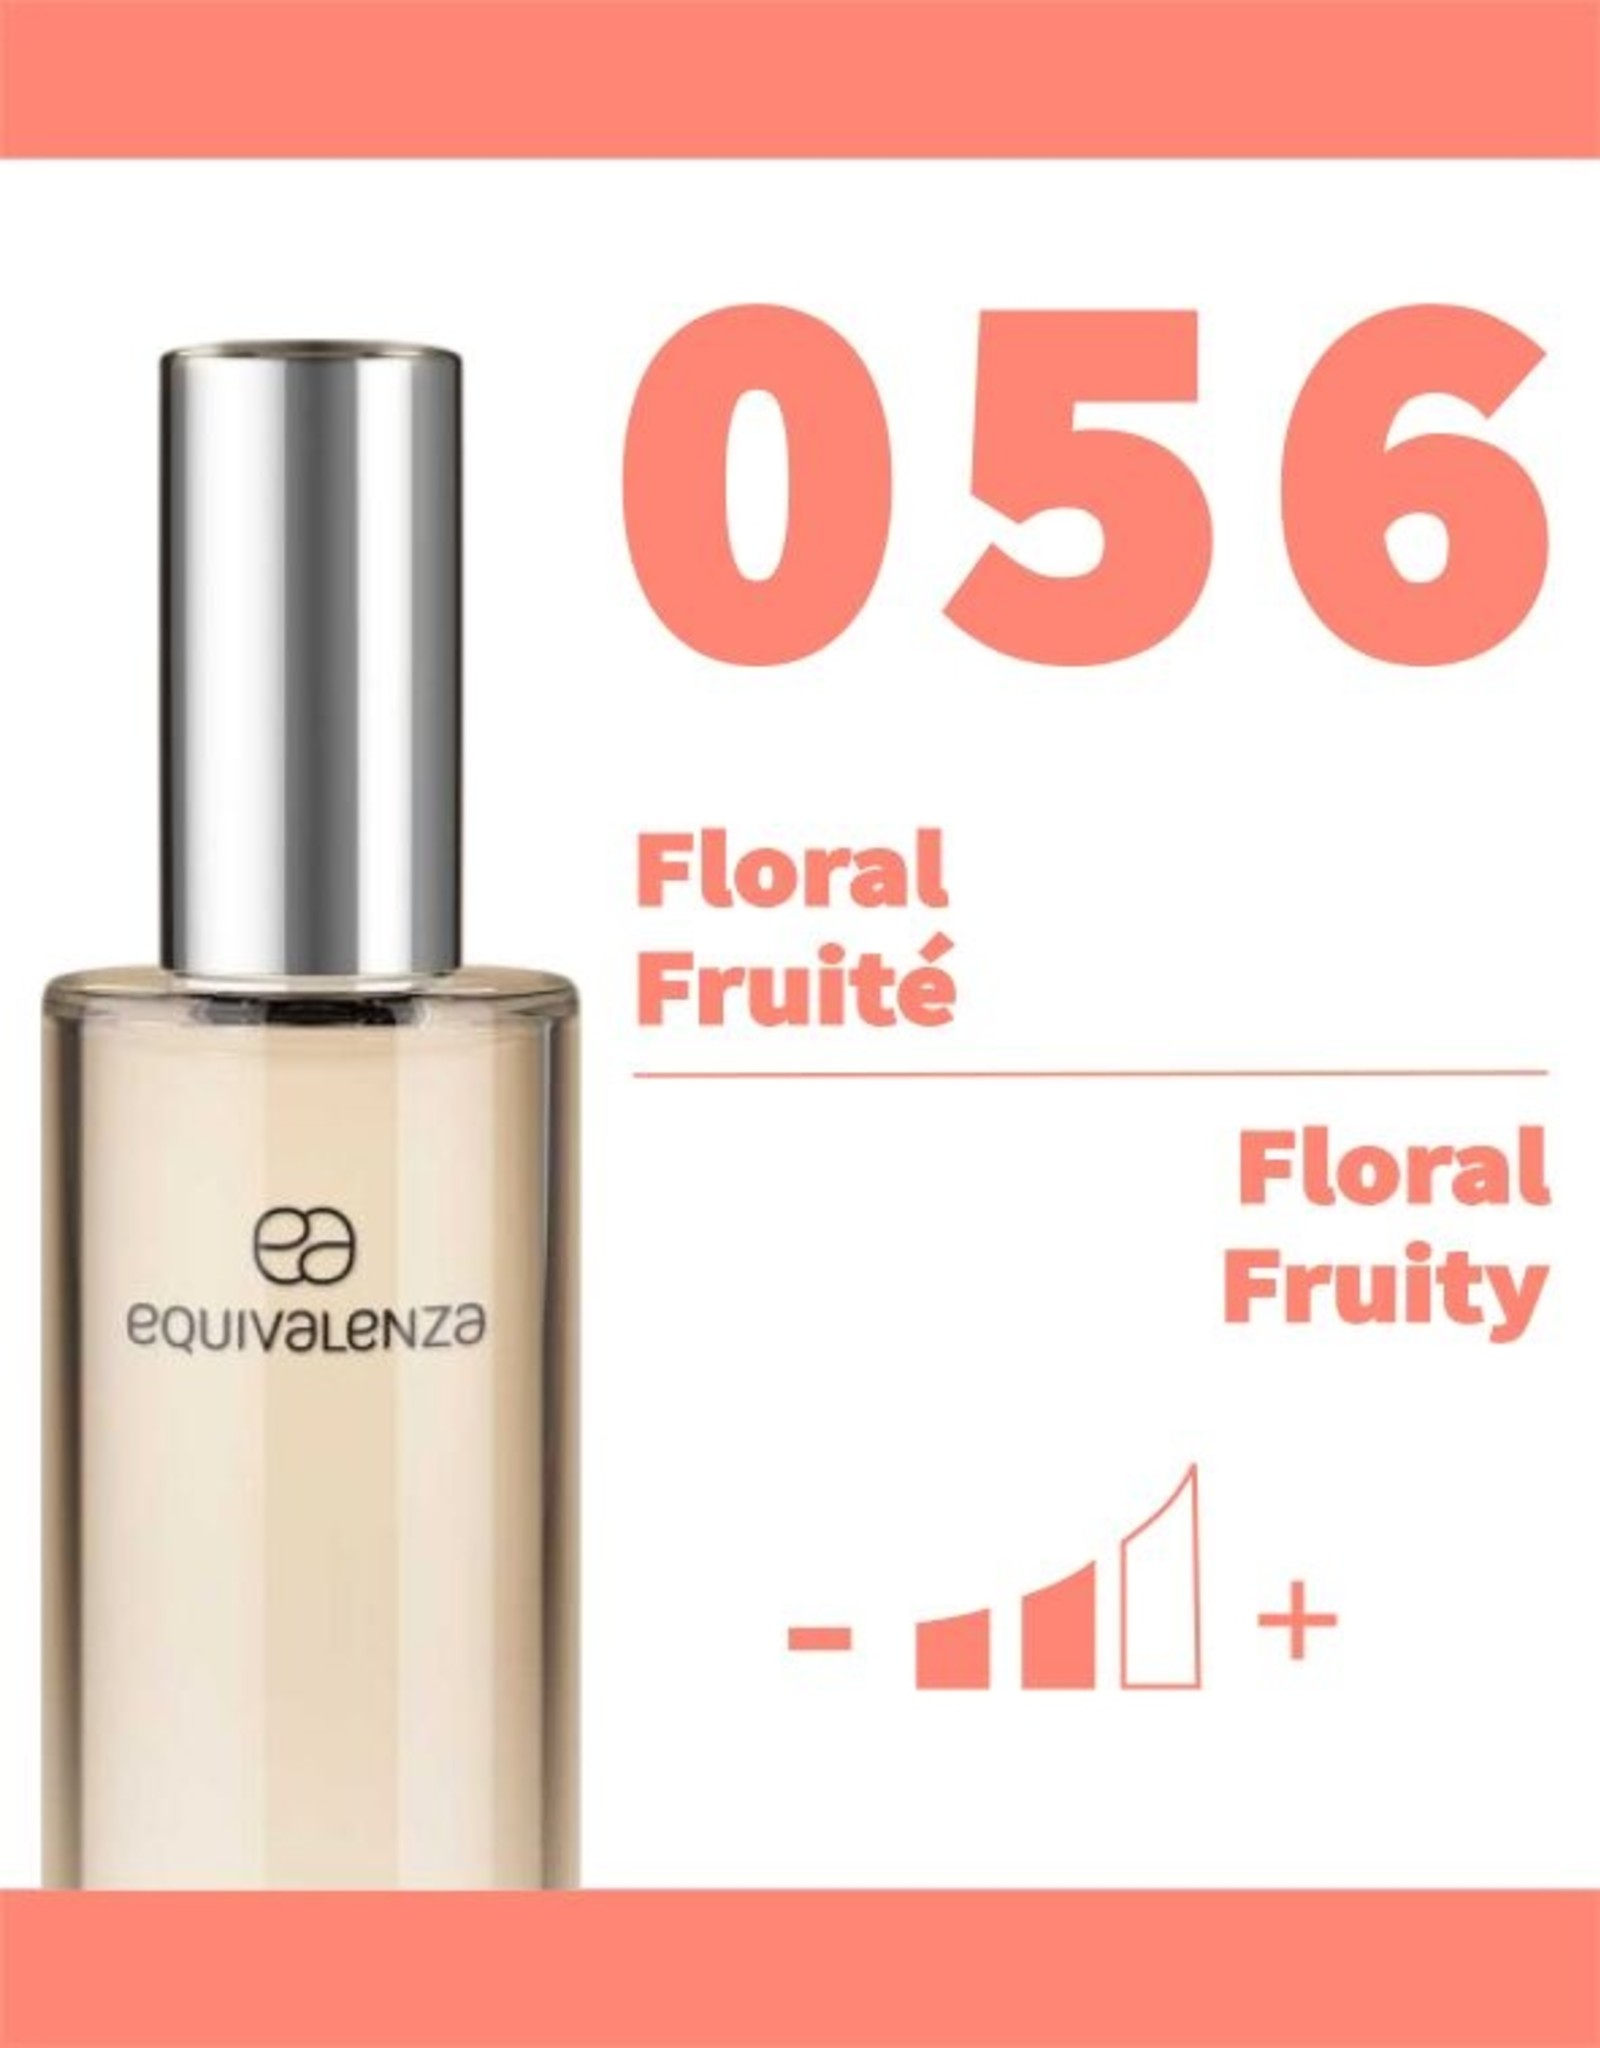 Equivalenza Floral Fruity 056